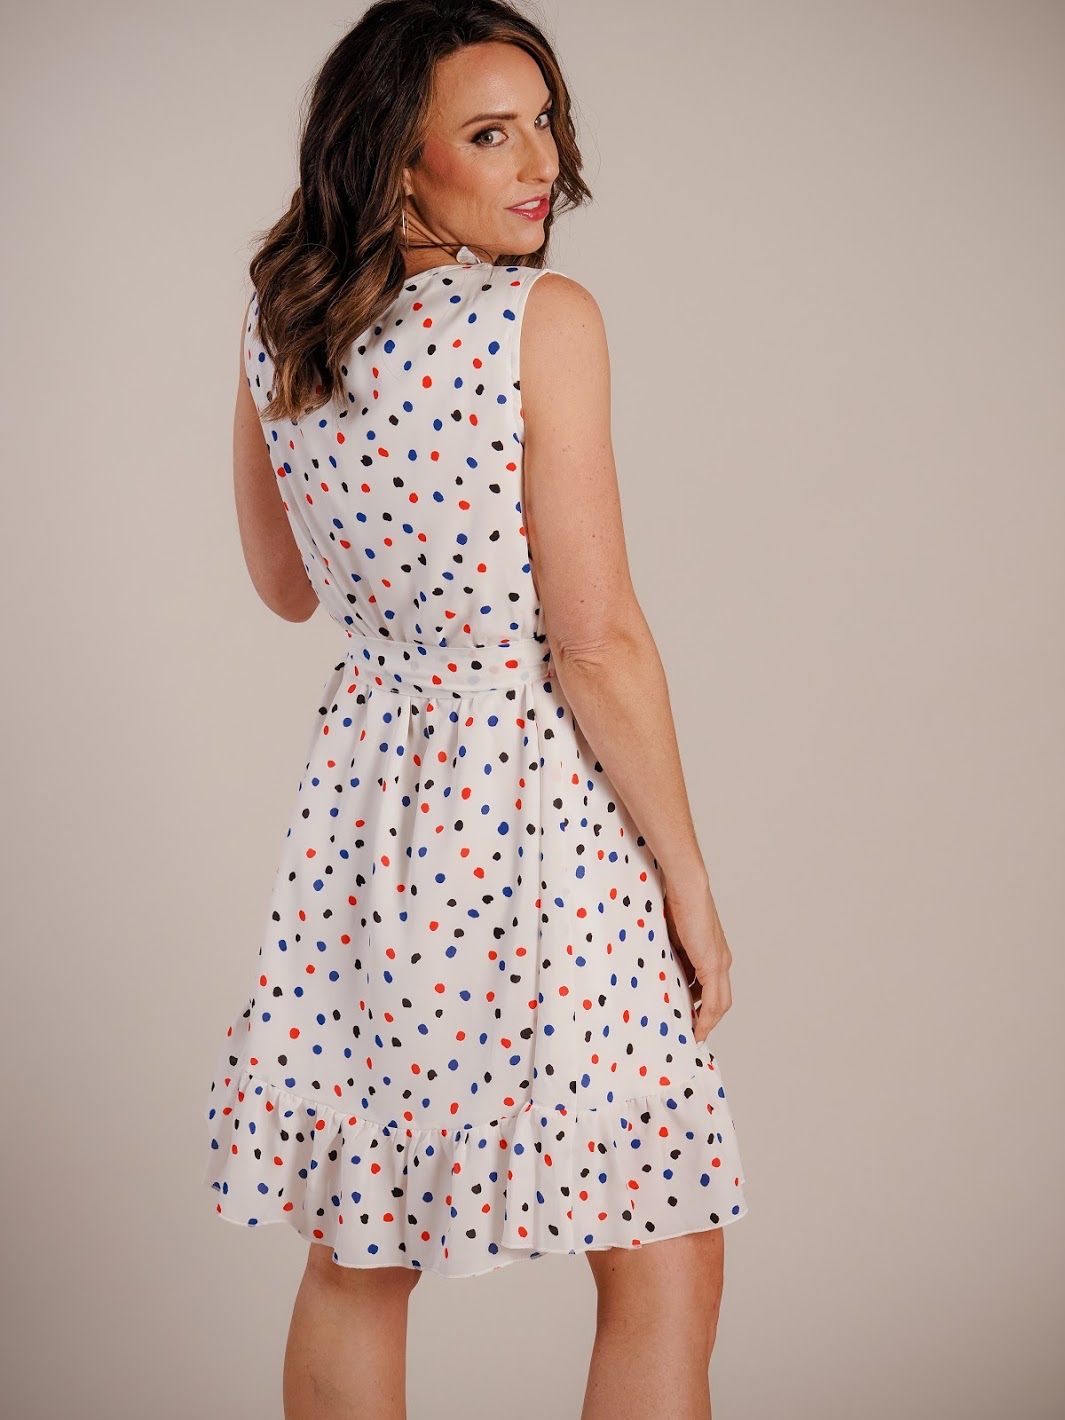 white dress with red and blue polka dots